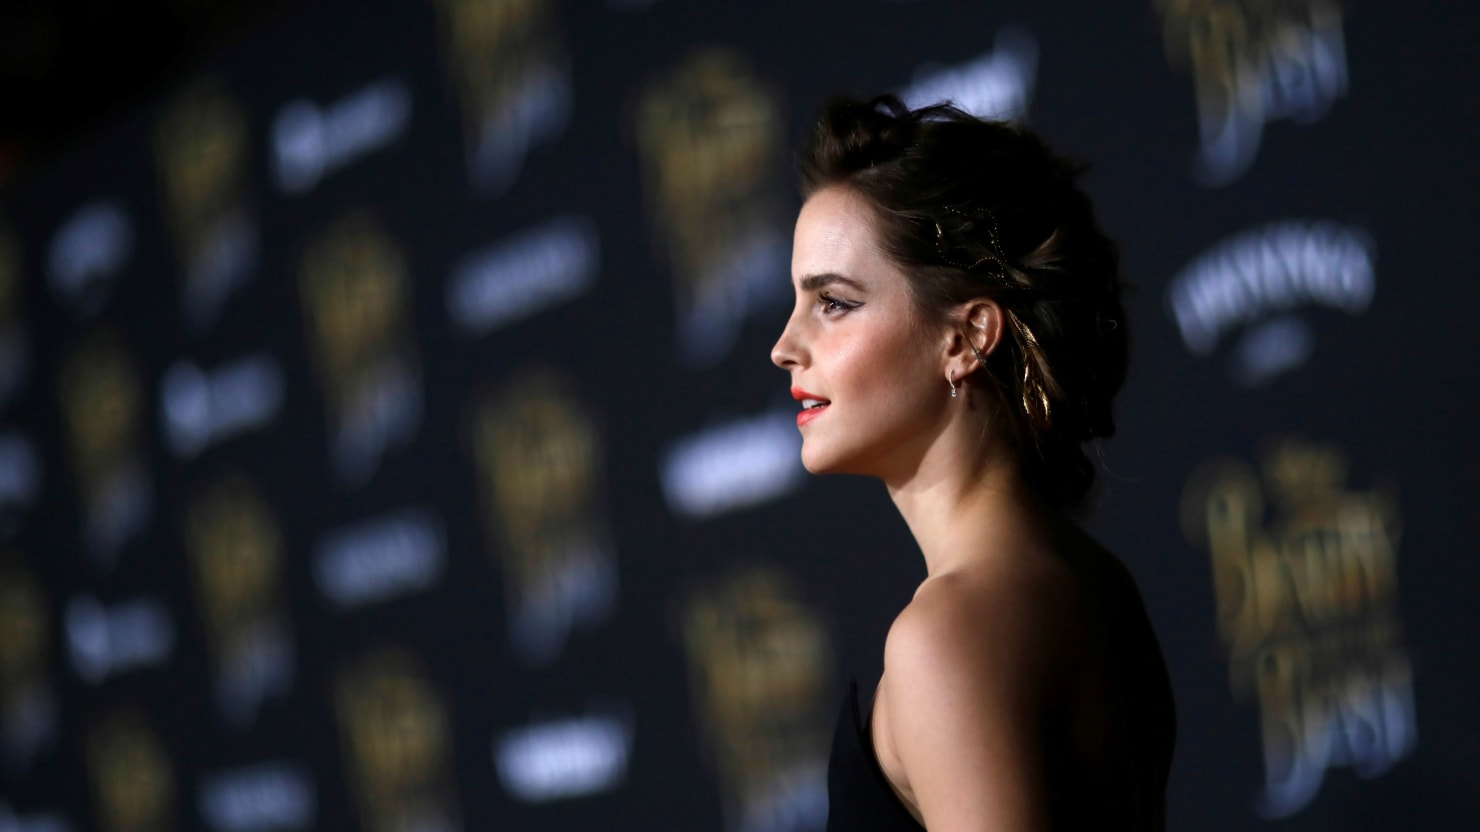 Emma Watson To Take Legal Action Over Her Private Photos